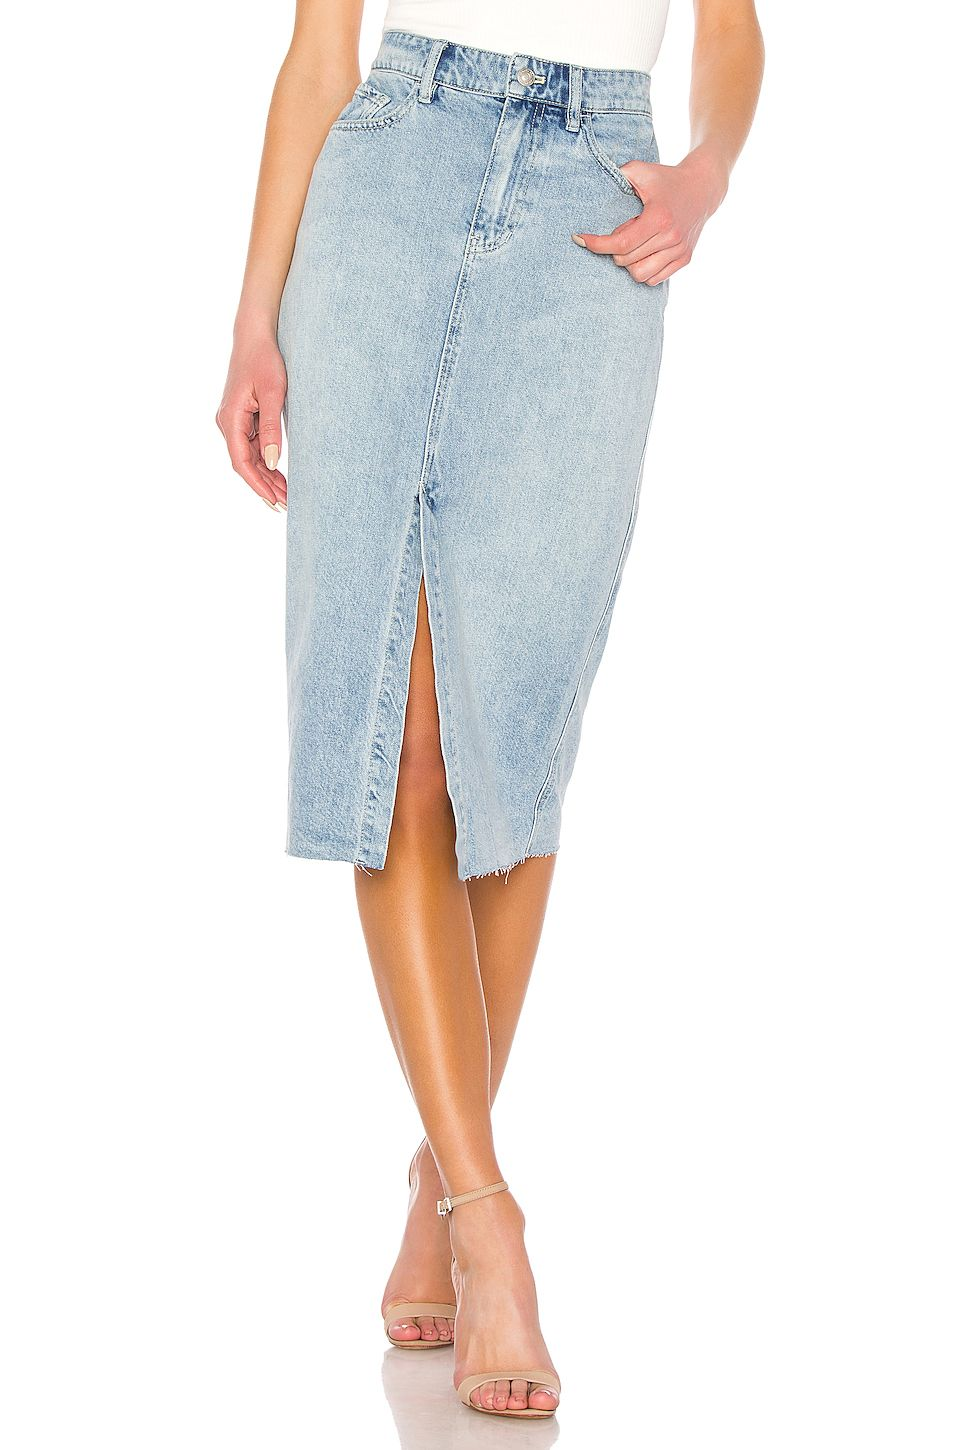 run shoes latest discount check out REVOLVE | Style ideas in 2019 | Denim skirt, Light denim, Skirts